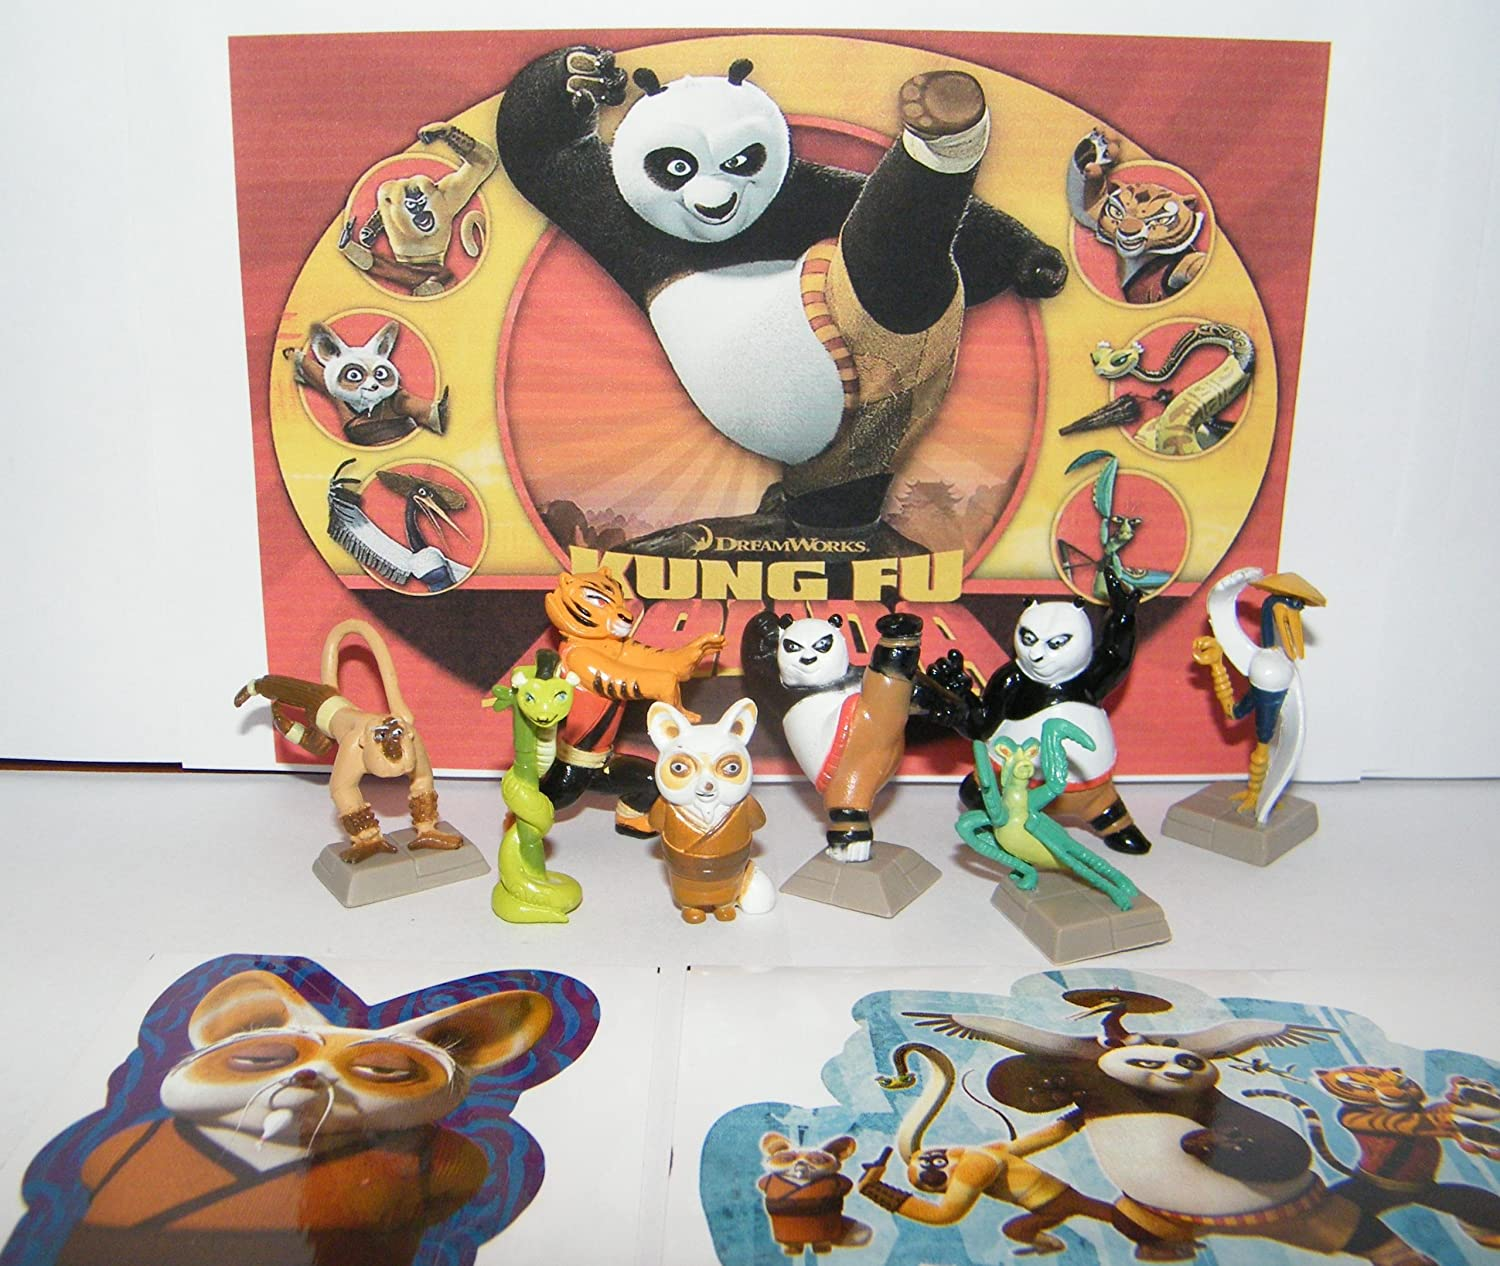 Buy Kung Fu Panda Mini Toy Figure Playset Of 8 With Po Master Shifu Tigress The Furious Five And Bonus Sticker Online At Low Prices In India Amazon In